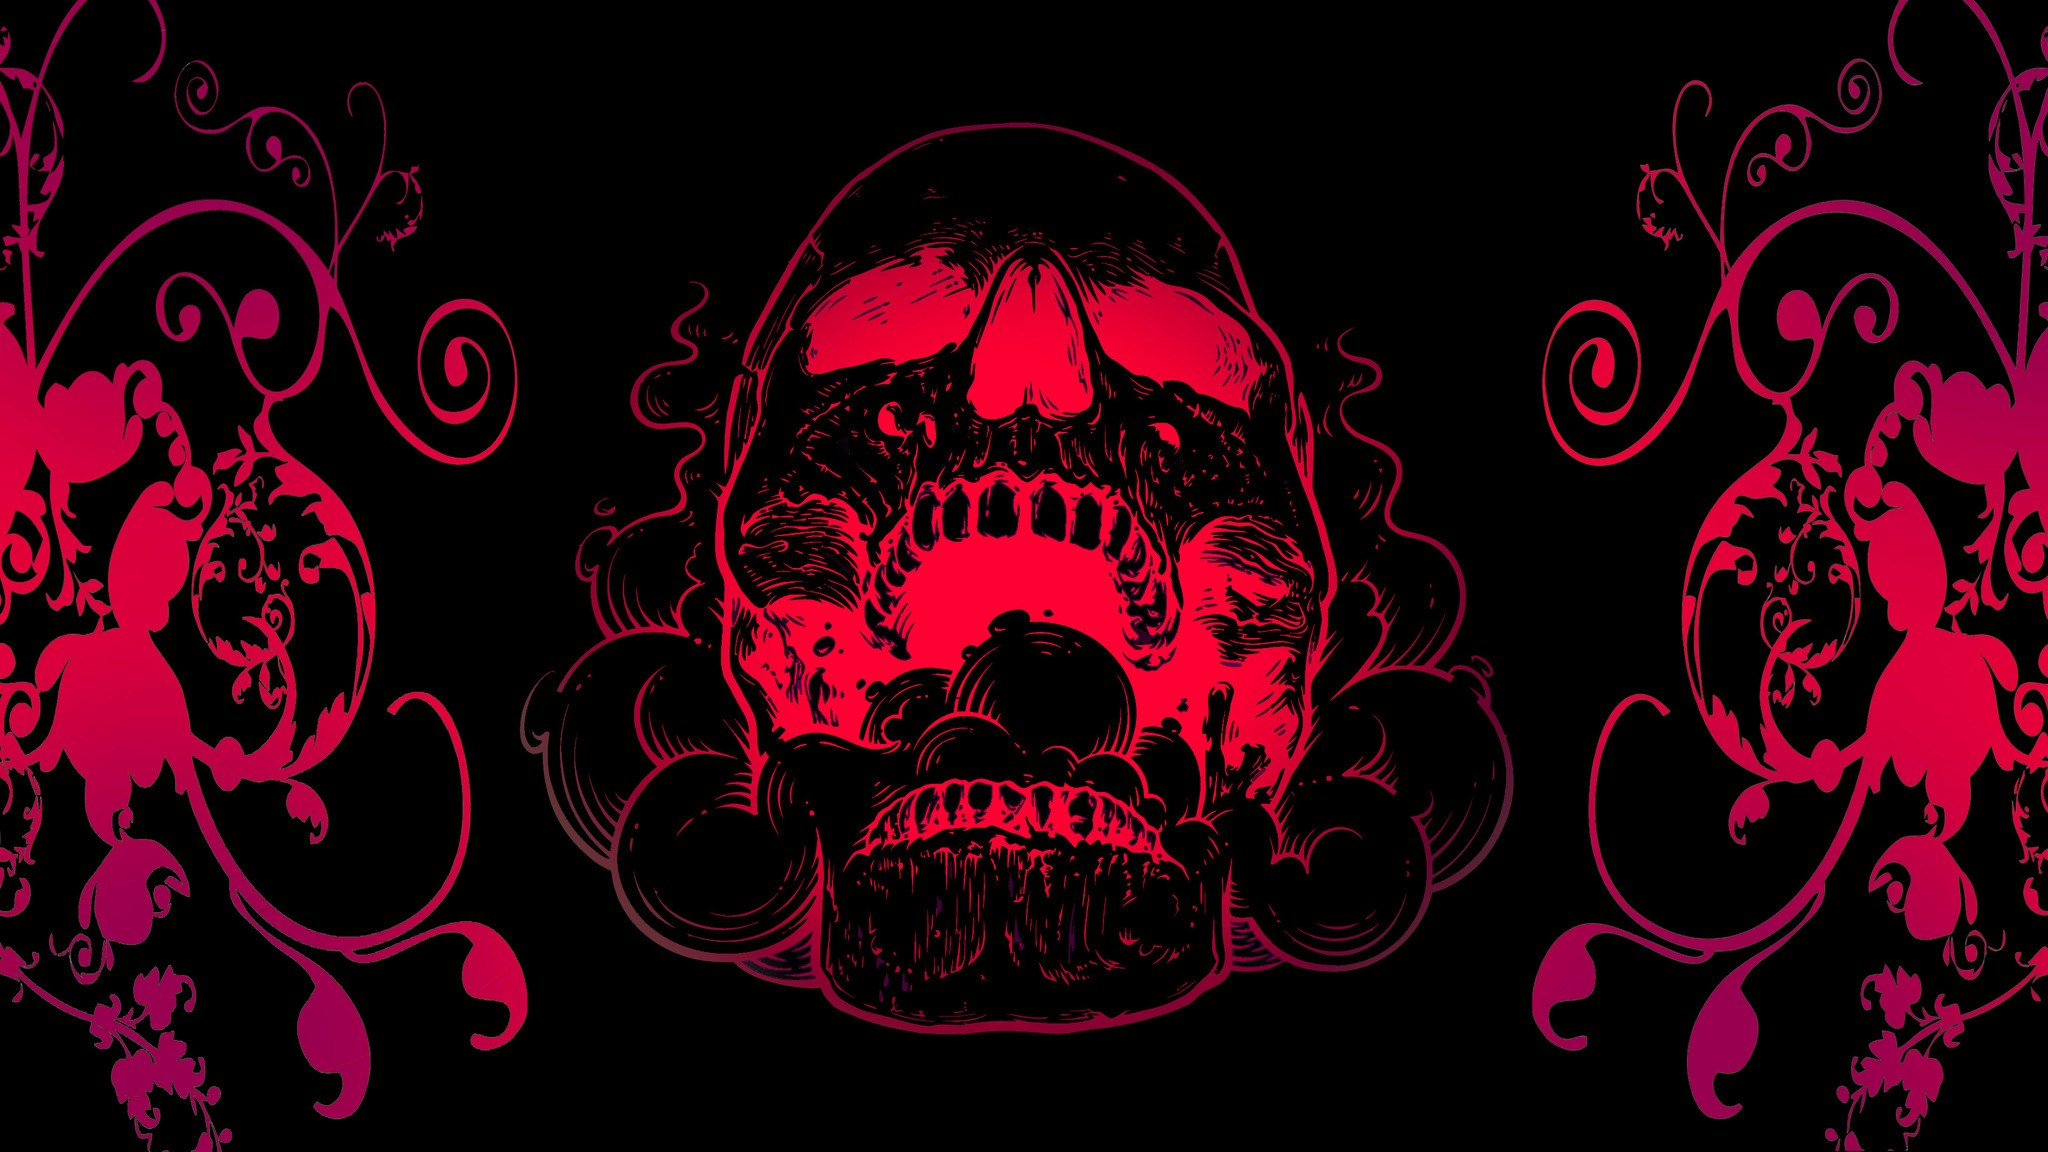 Black And Red Skull 226926 Hd Wallpaper Backgrounds Download